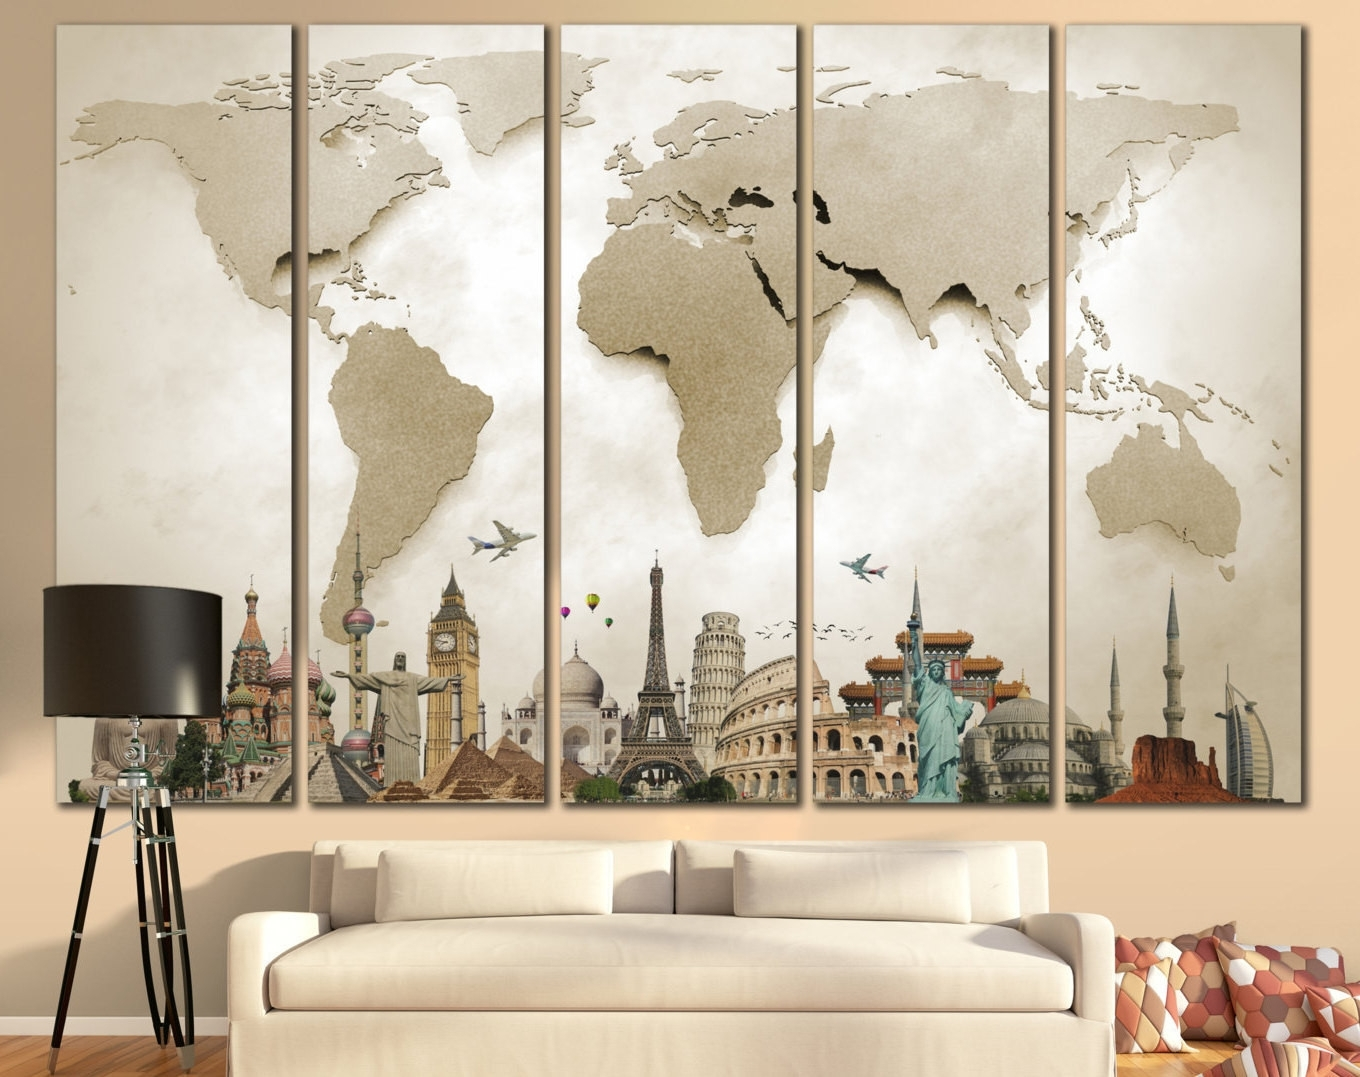 33 Awesome Decorative Wall Art Inspiration Of Ross Wall Art | Wall With Regard To Latest Ross Wall Art (View 2 of 20)